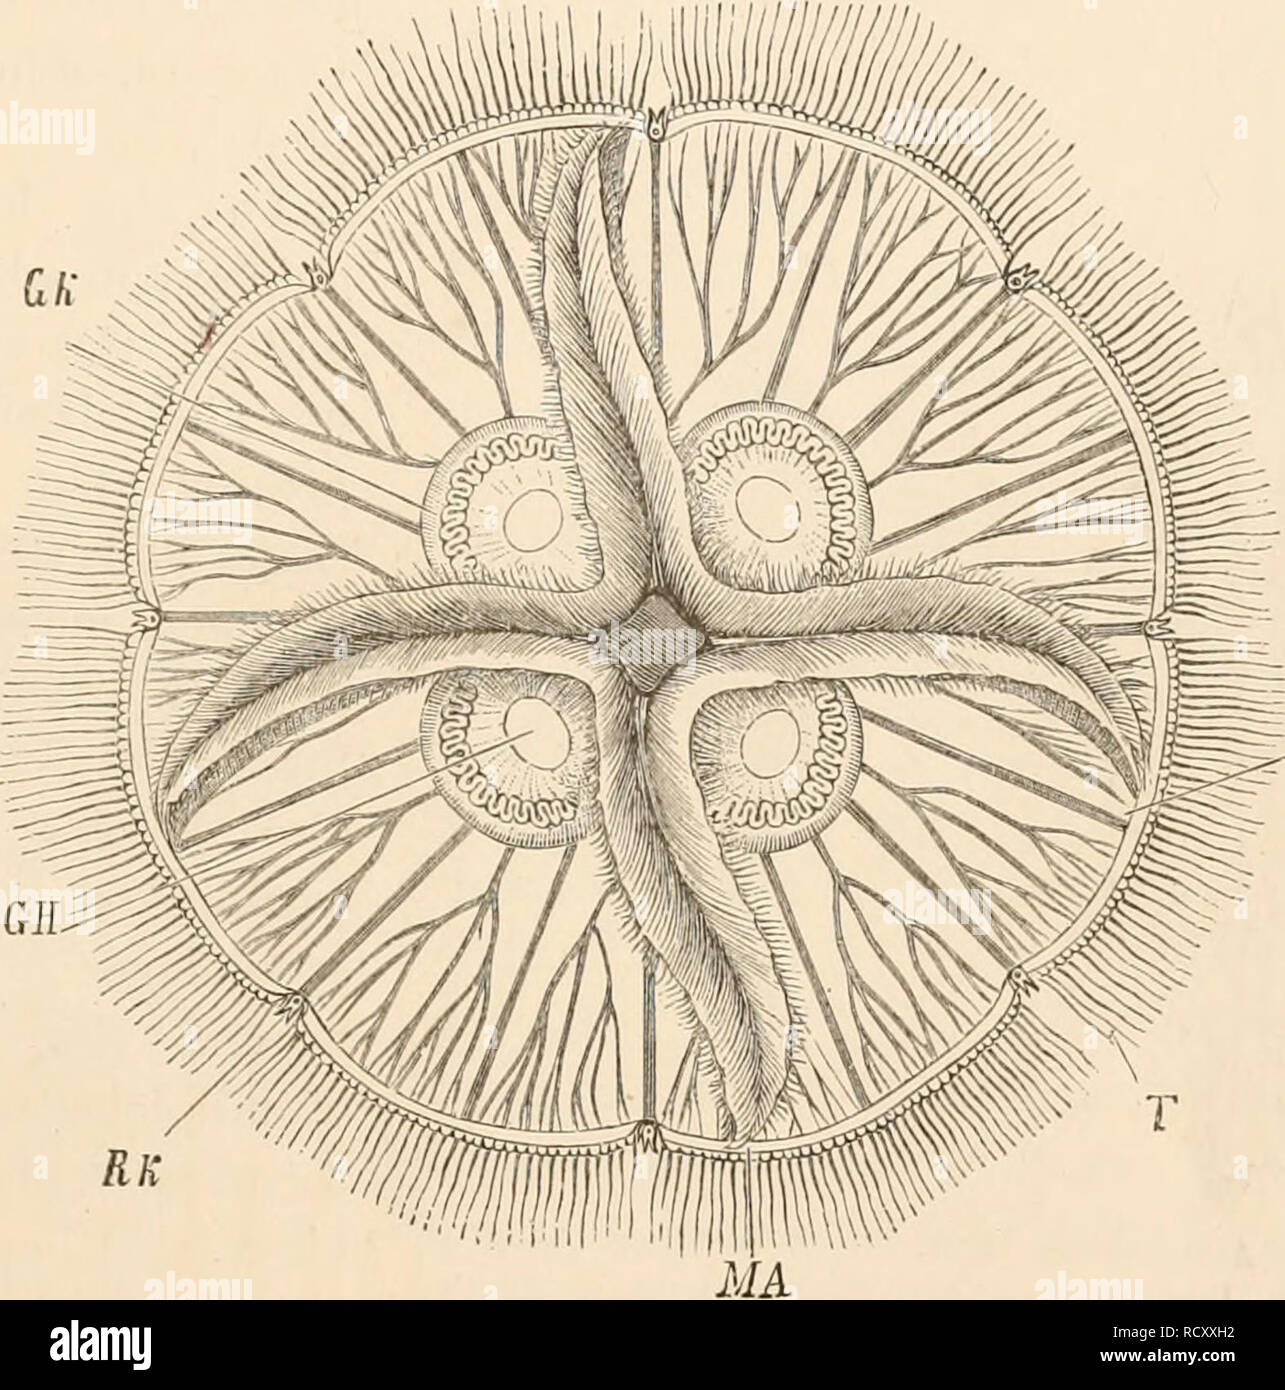 hight resolution of elementary text book of zoology zoology alimextary canal 55 vascular canals